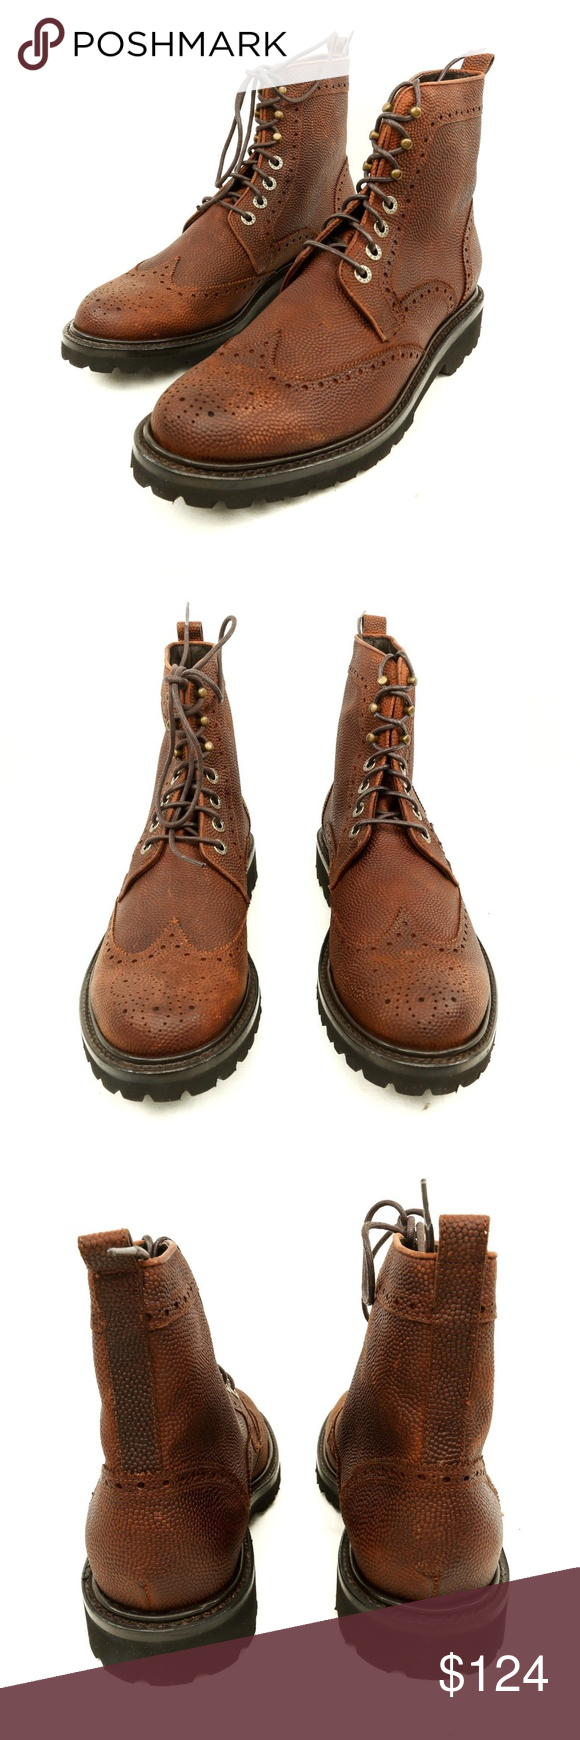 a005742f3d5 Wolverine 1883 Percy Pebble Grain Wingtip Boots Wolverine 1883 Percy ...